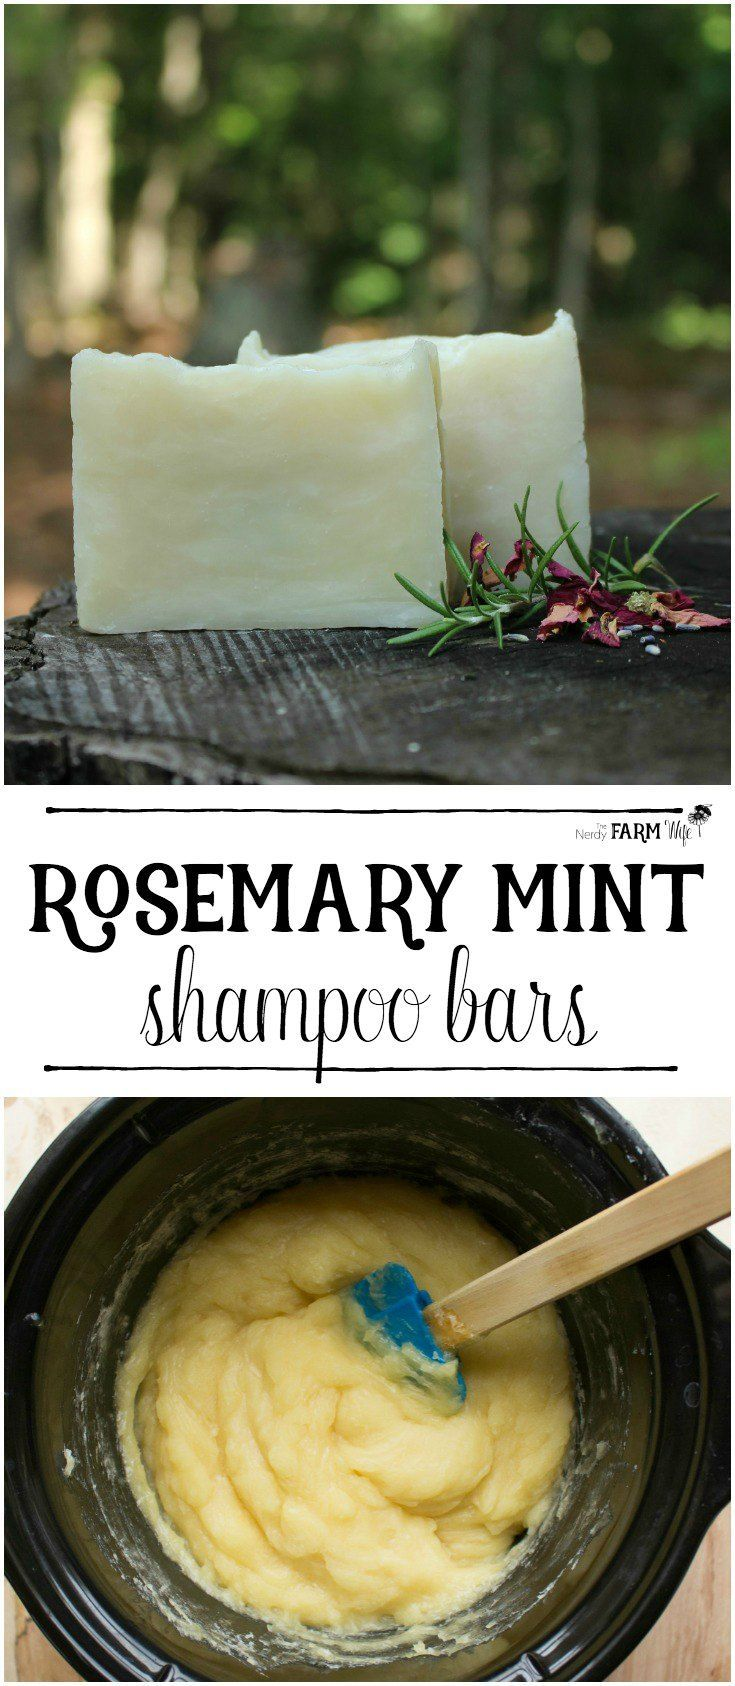 rosemary mint shampoo bars | diy cleaning recipes | pinterest